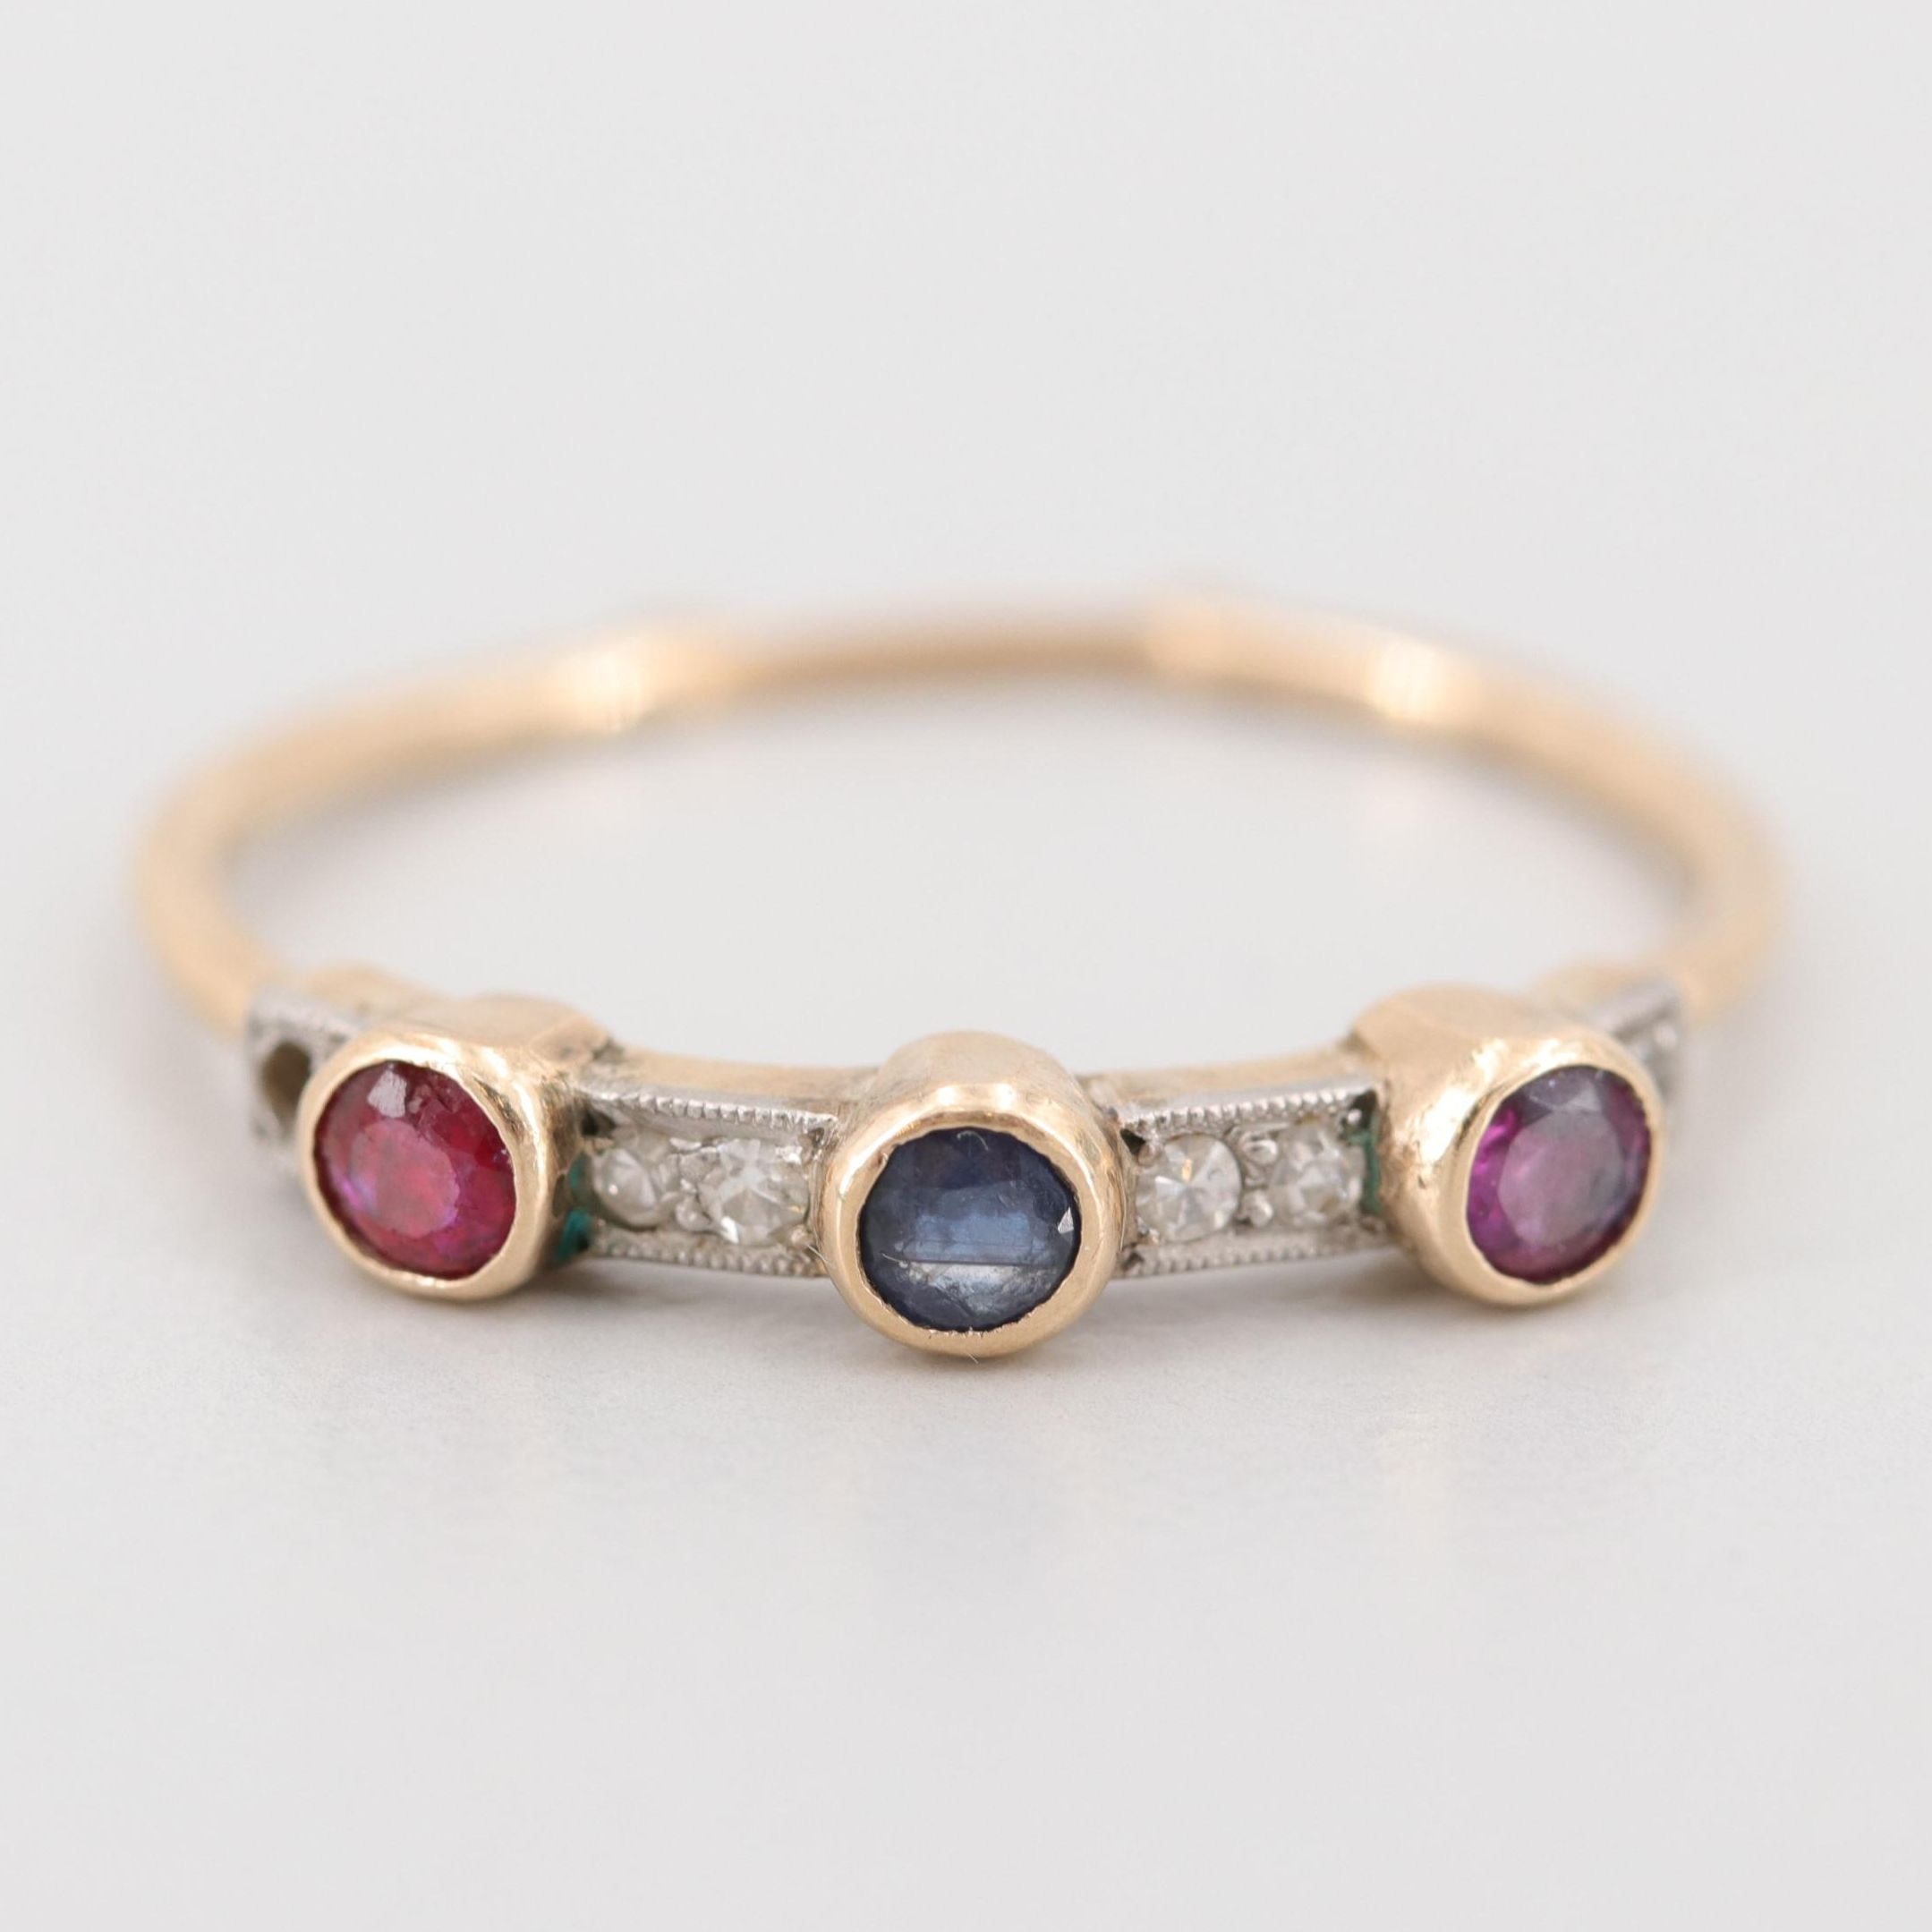 Vintage 14K Yellow Gold Sapphire, Ruby and Diamond Ring